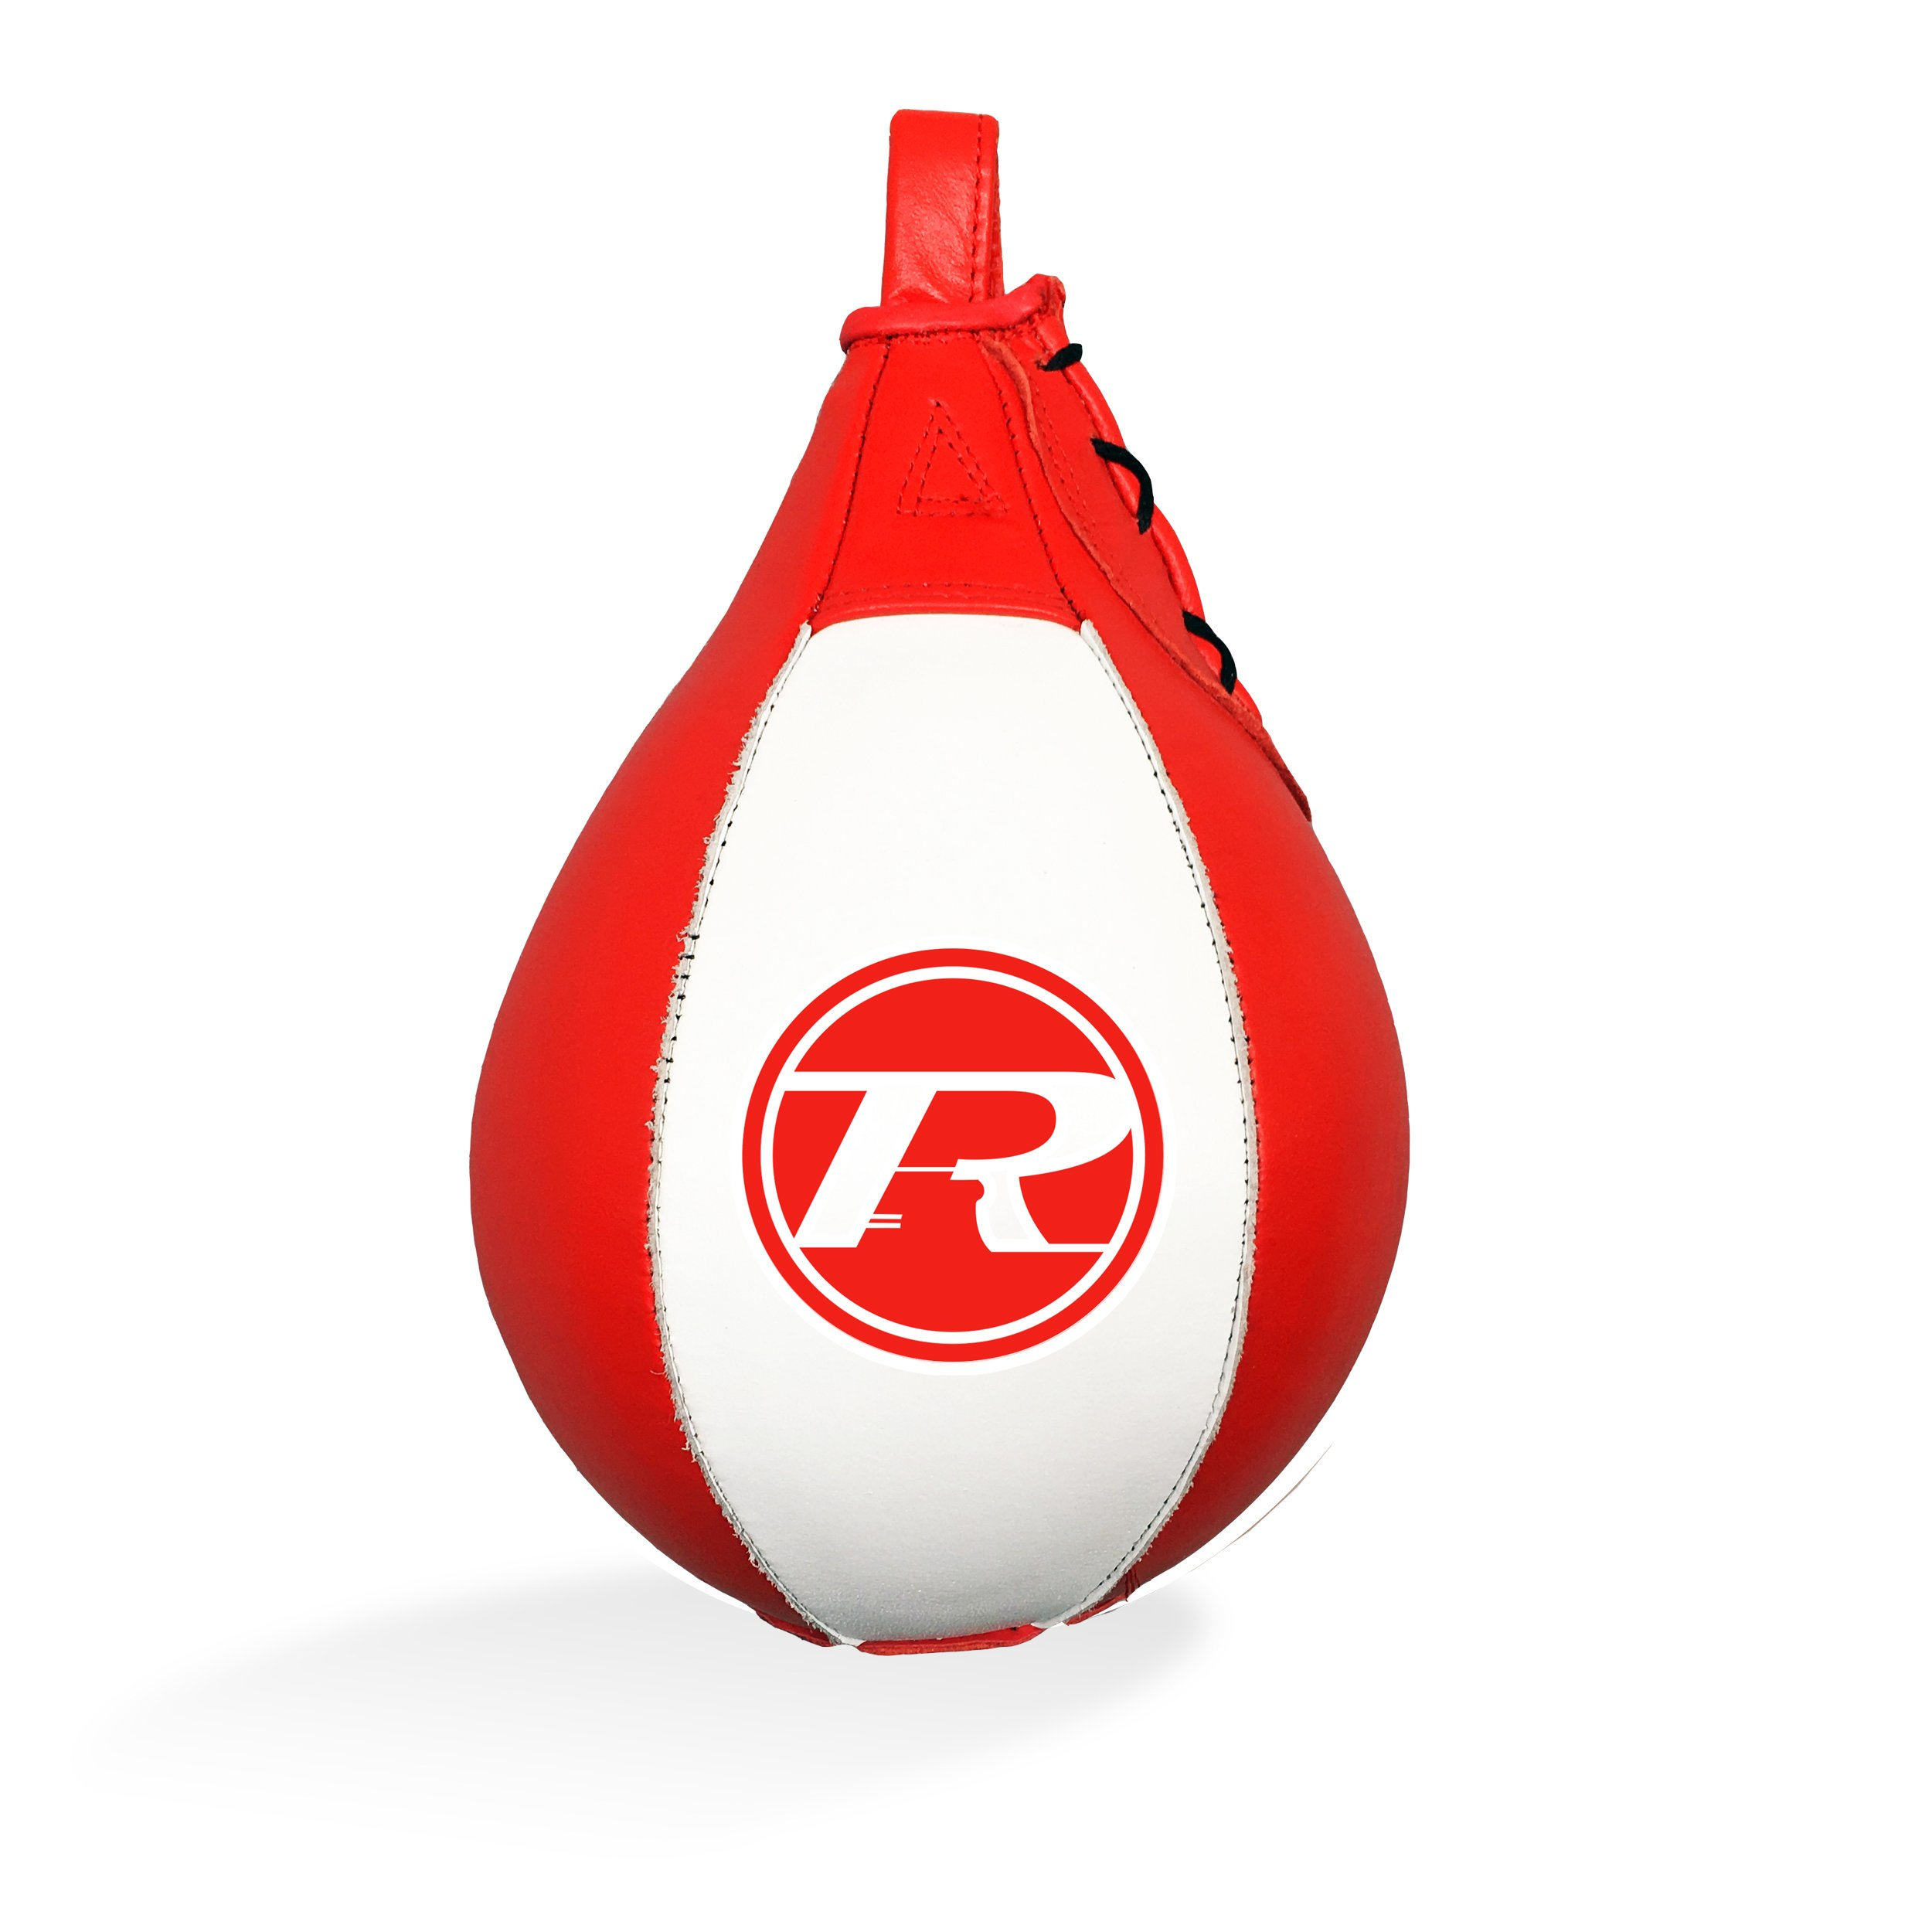 RINGSIDE SYNTHETIC LEATHER SPEED BALL RED / WHITE